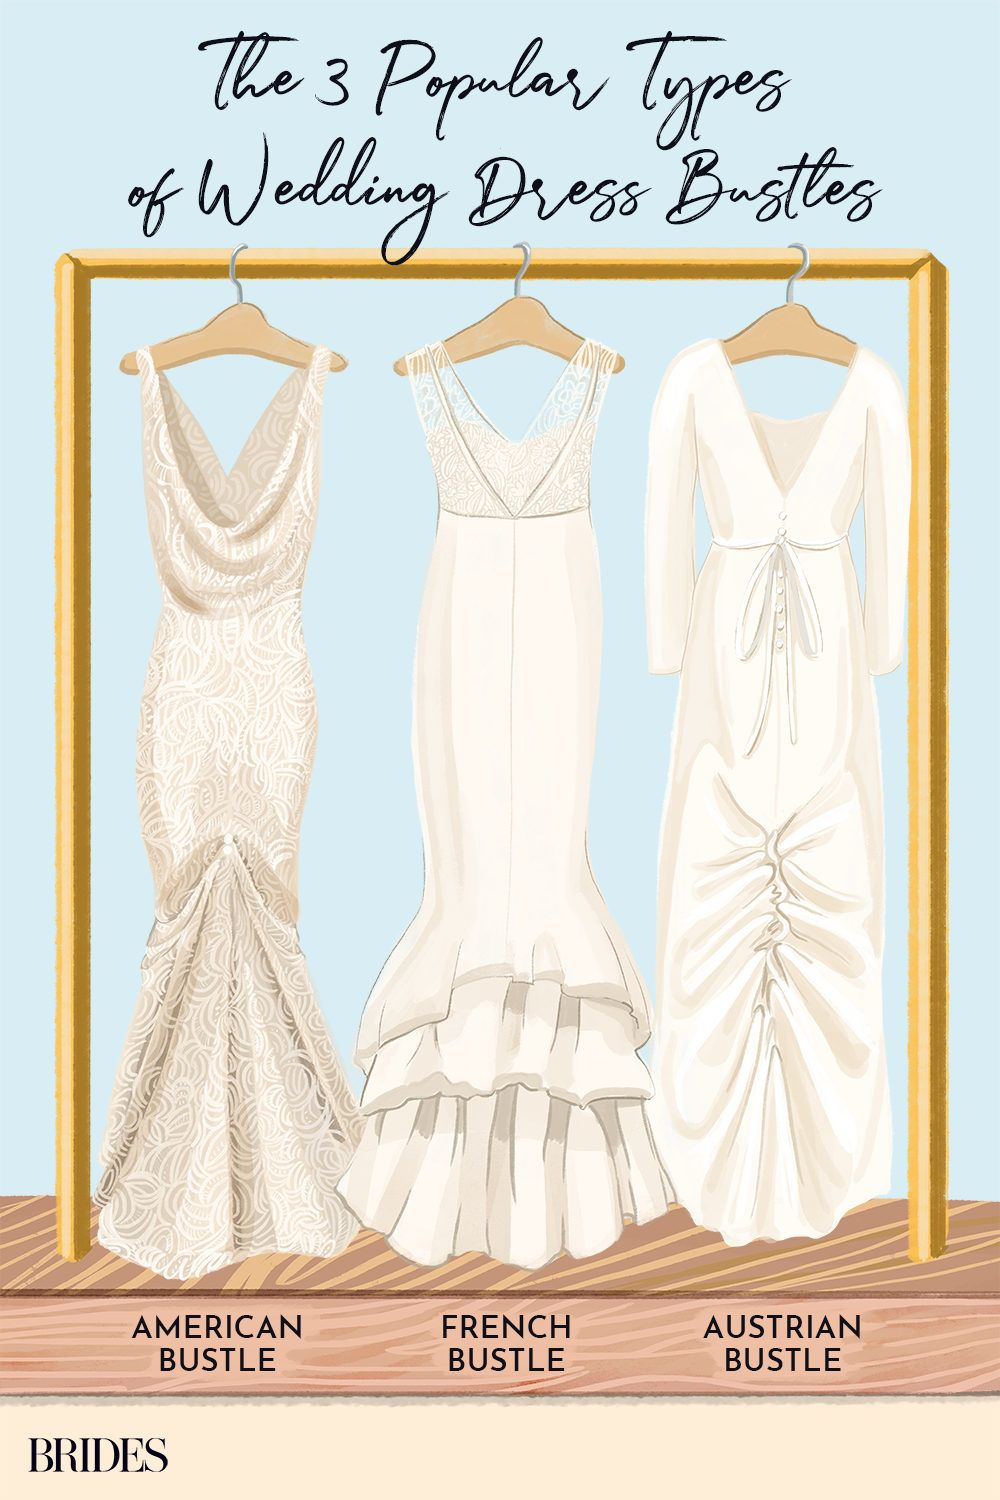 Wedding Dress Bustle Types All The Styles And Tips You Need To Know In 2020 Wedding Dress Bustle Wedding Dress Styles Chart Types Of Wedding Gowns